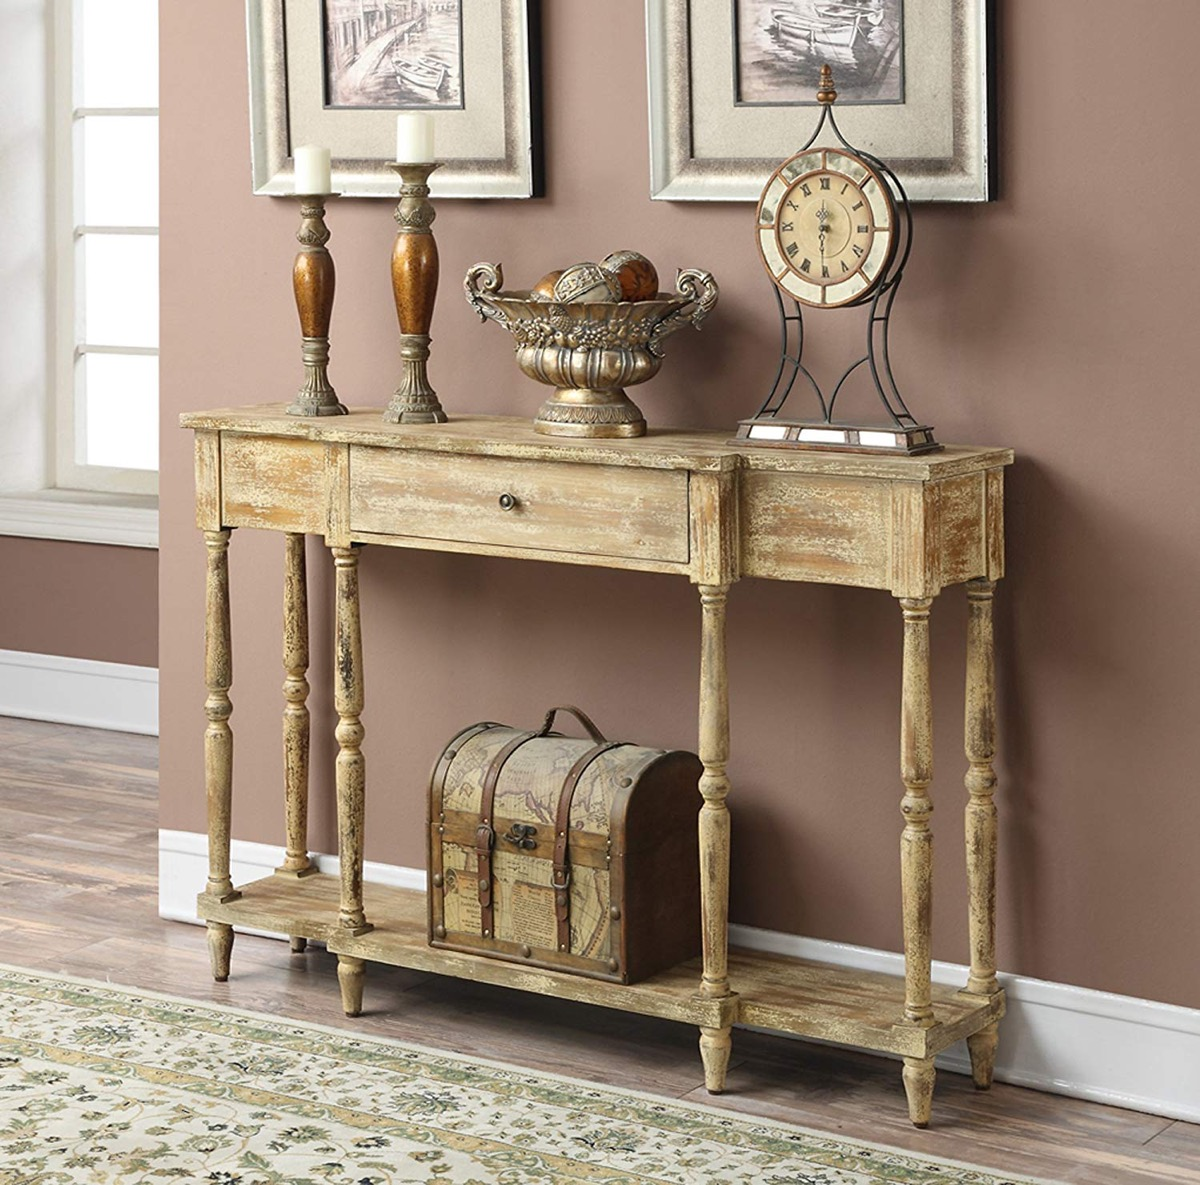 antique-console-table-distressed-wood-with-drawer-for-traditional-interior-design